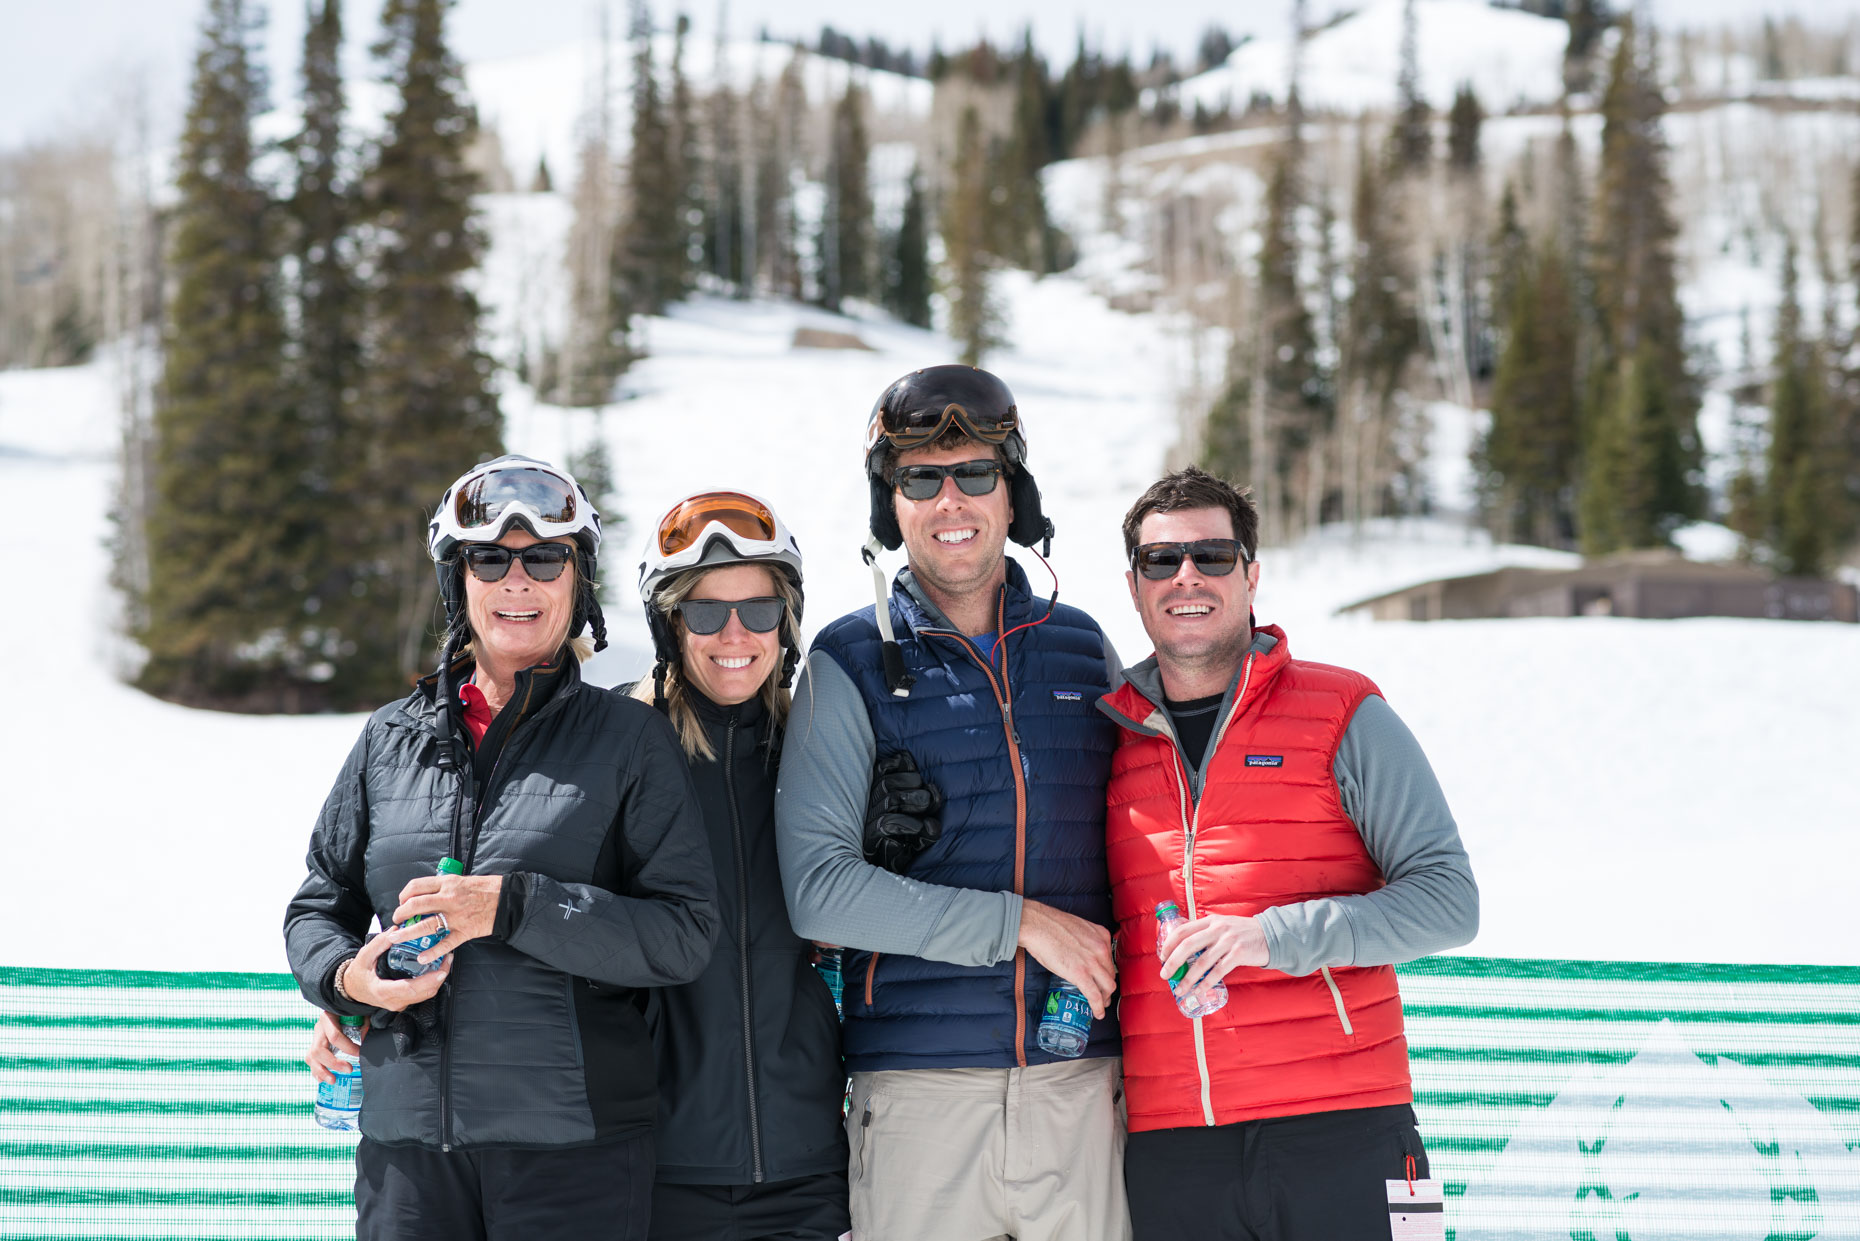 2015-03-21-AMEX-Deer-Valley-0212